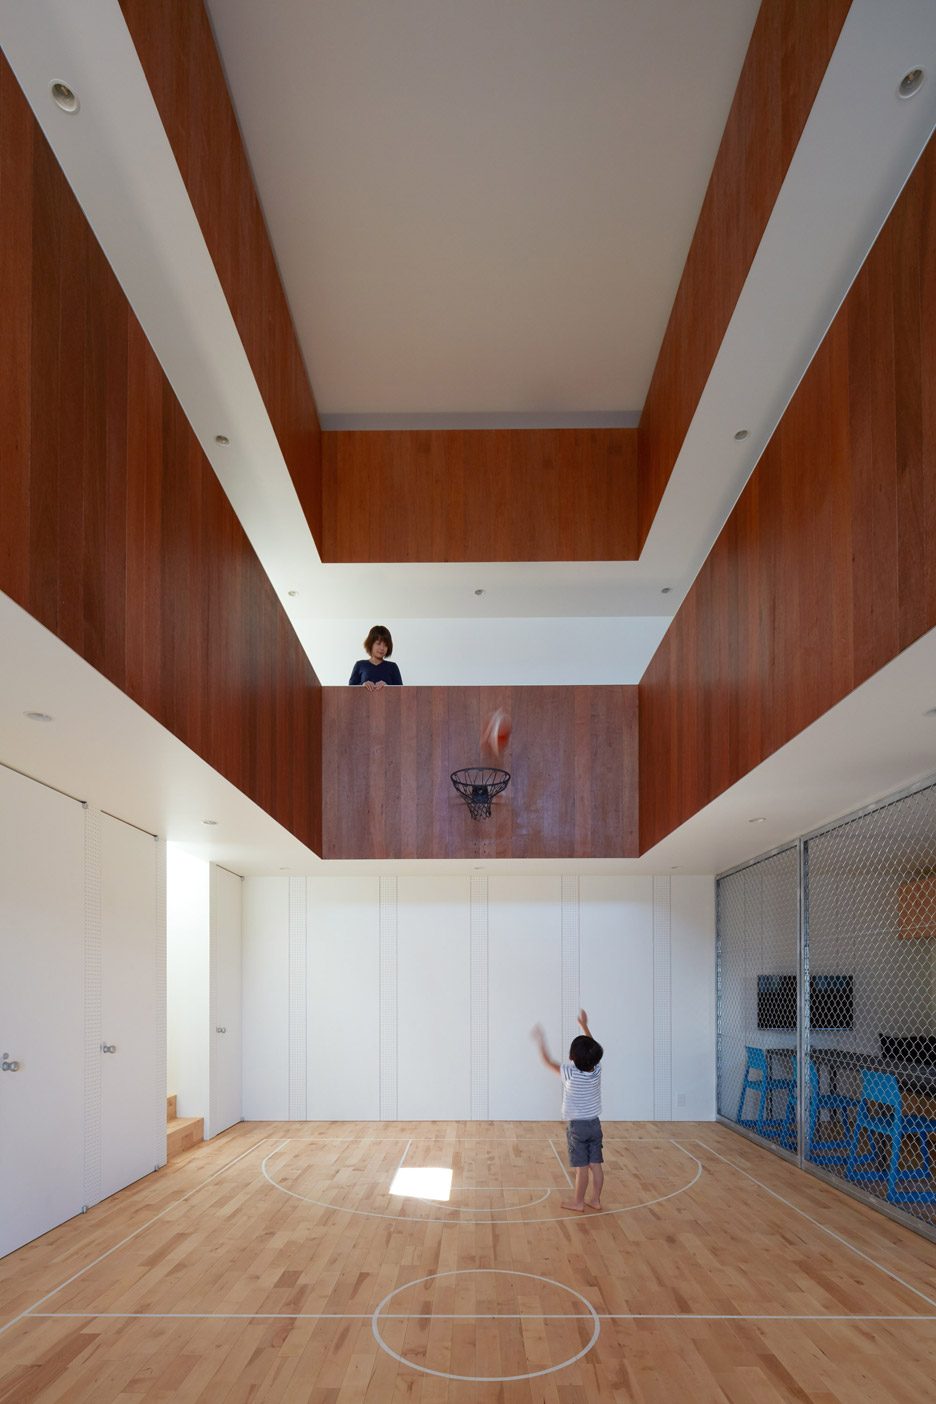 Koizumi Sekkei Designs House In Japan With Basketball Court At Its Centre